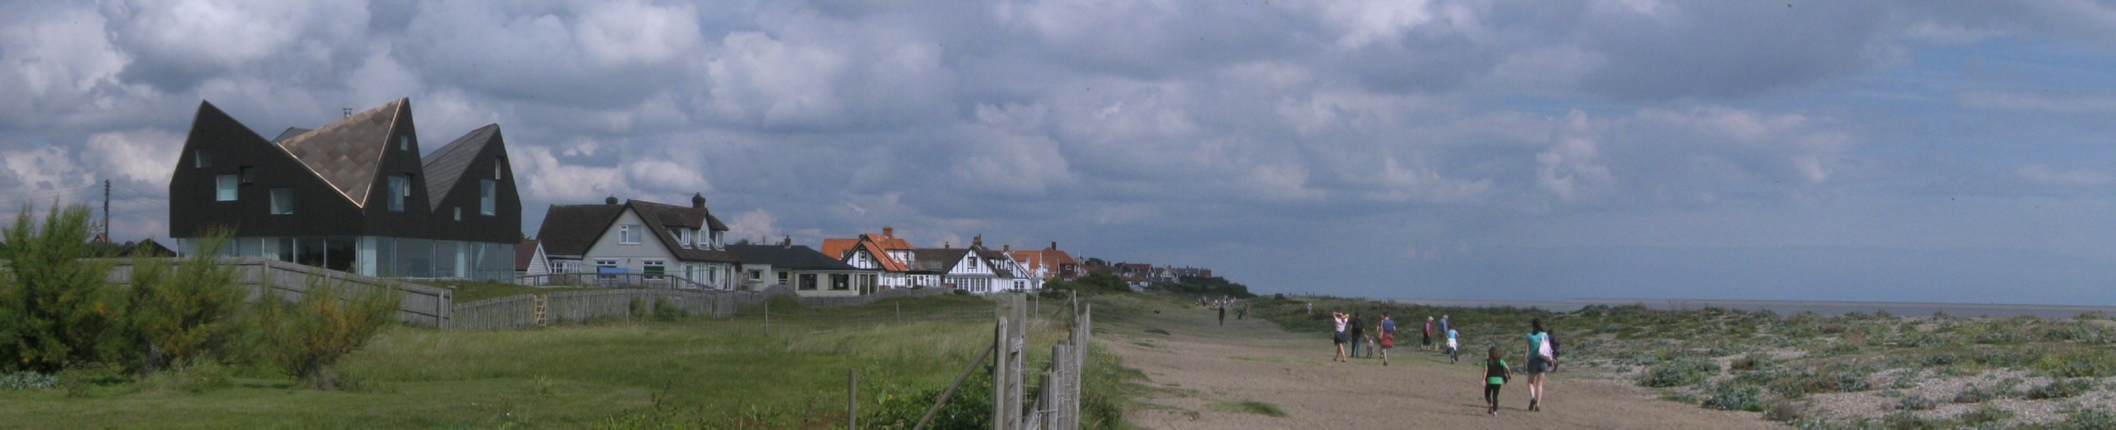 The Dune House, Thorpeness